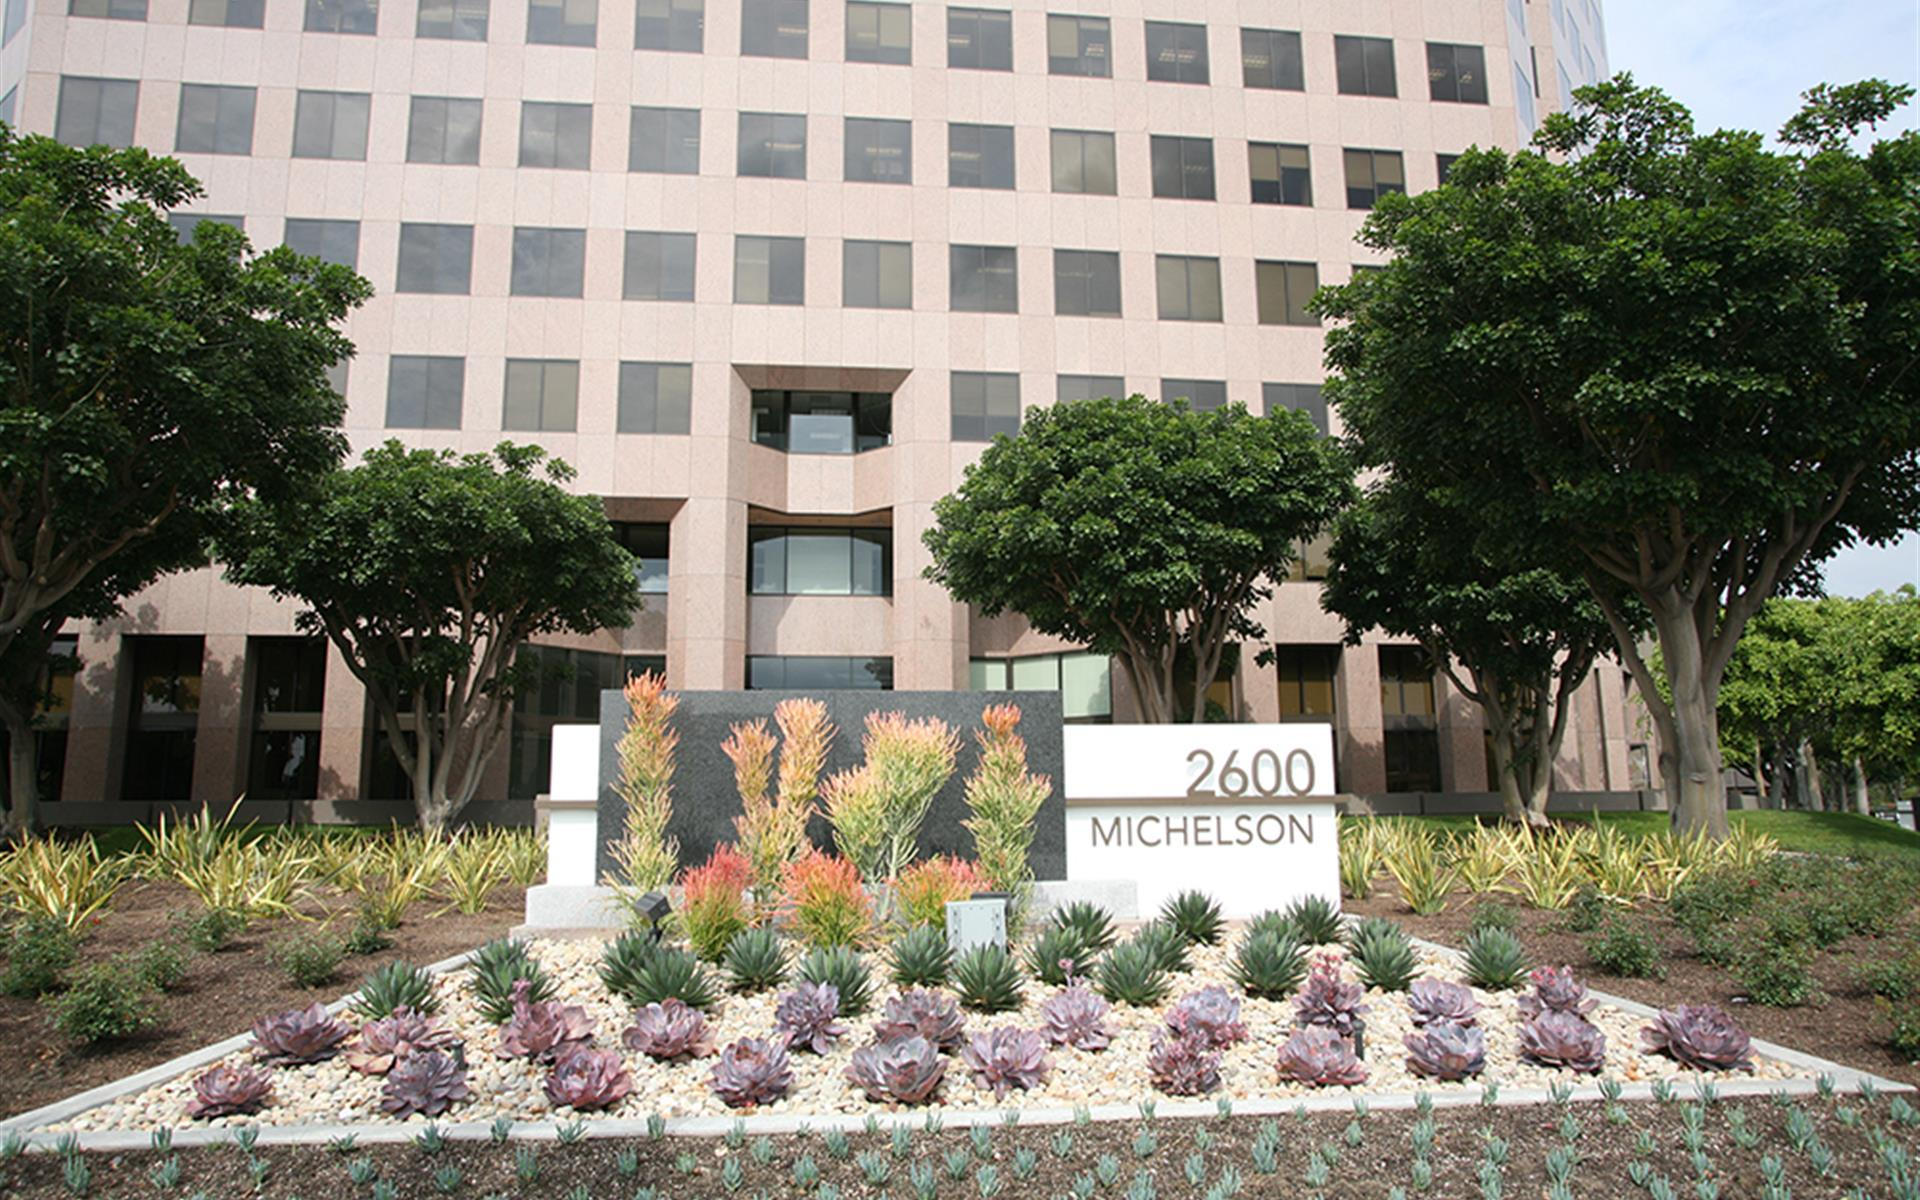 (MIC) 2600 Michelson - Office 27